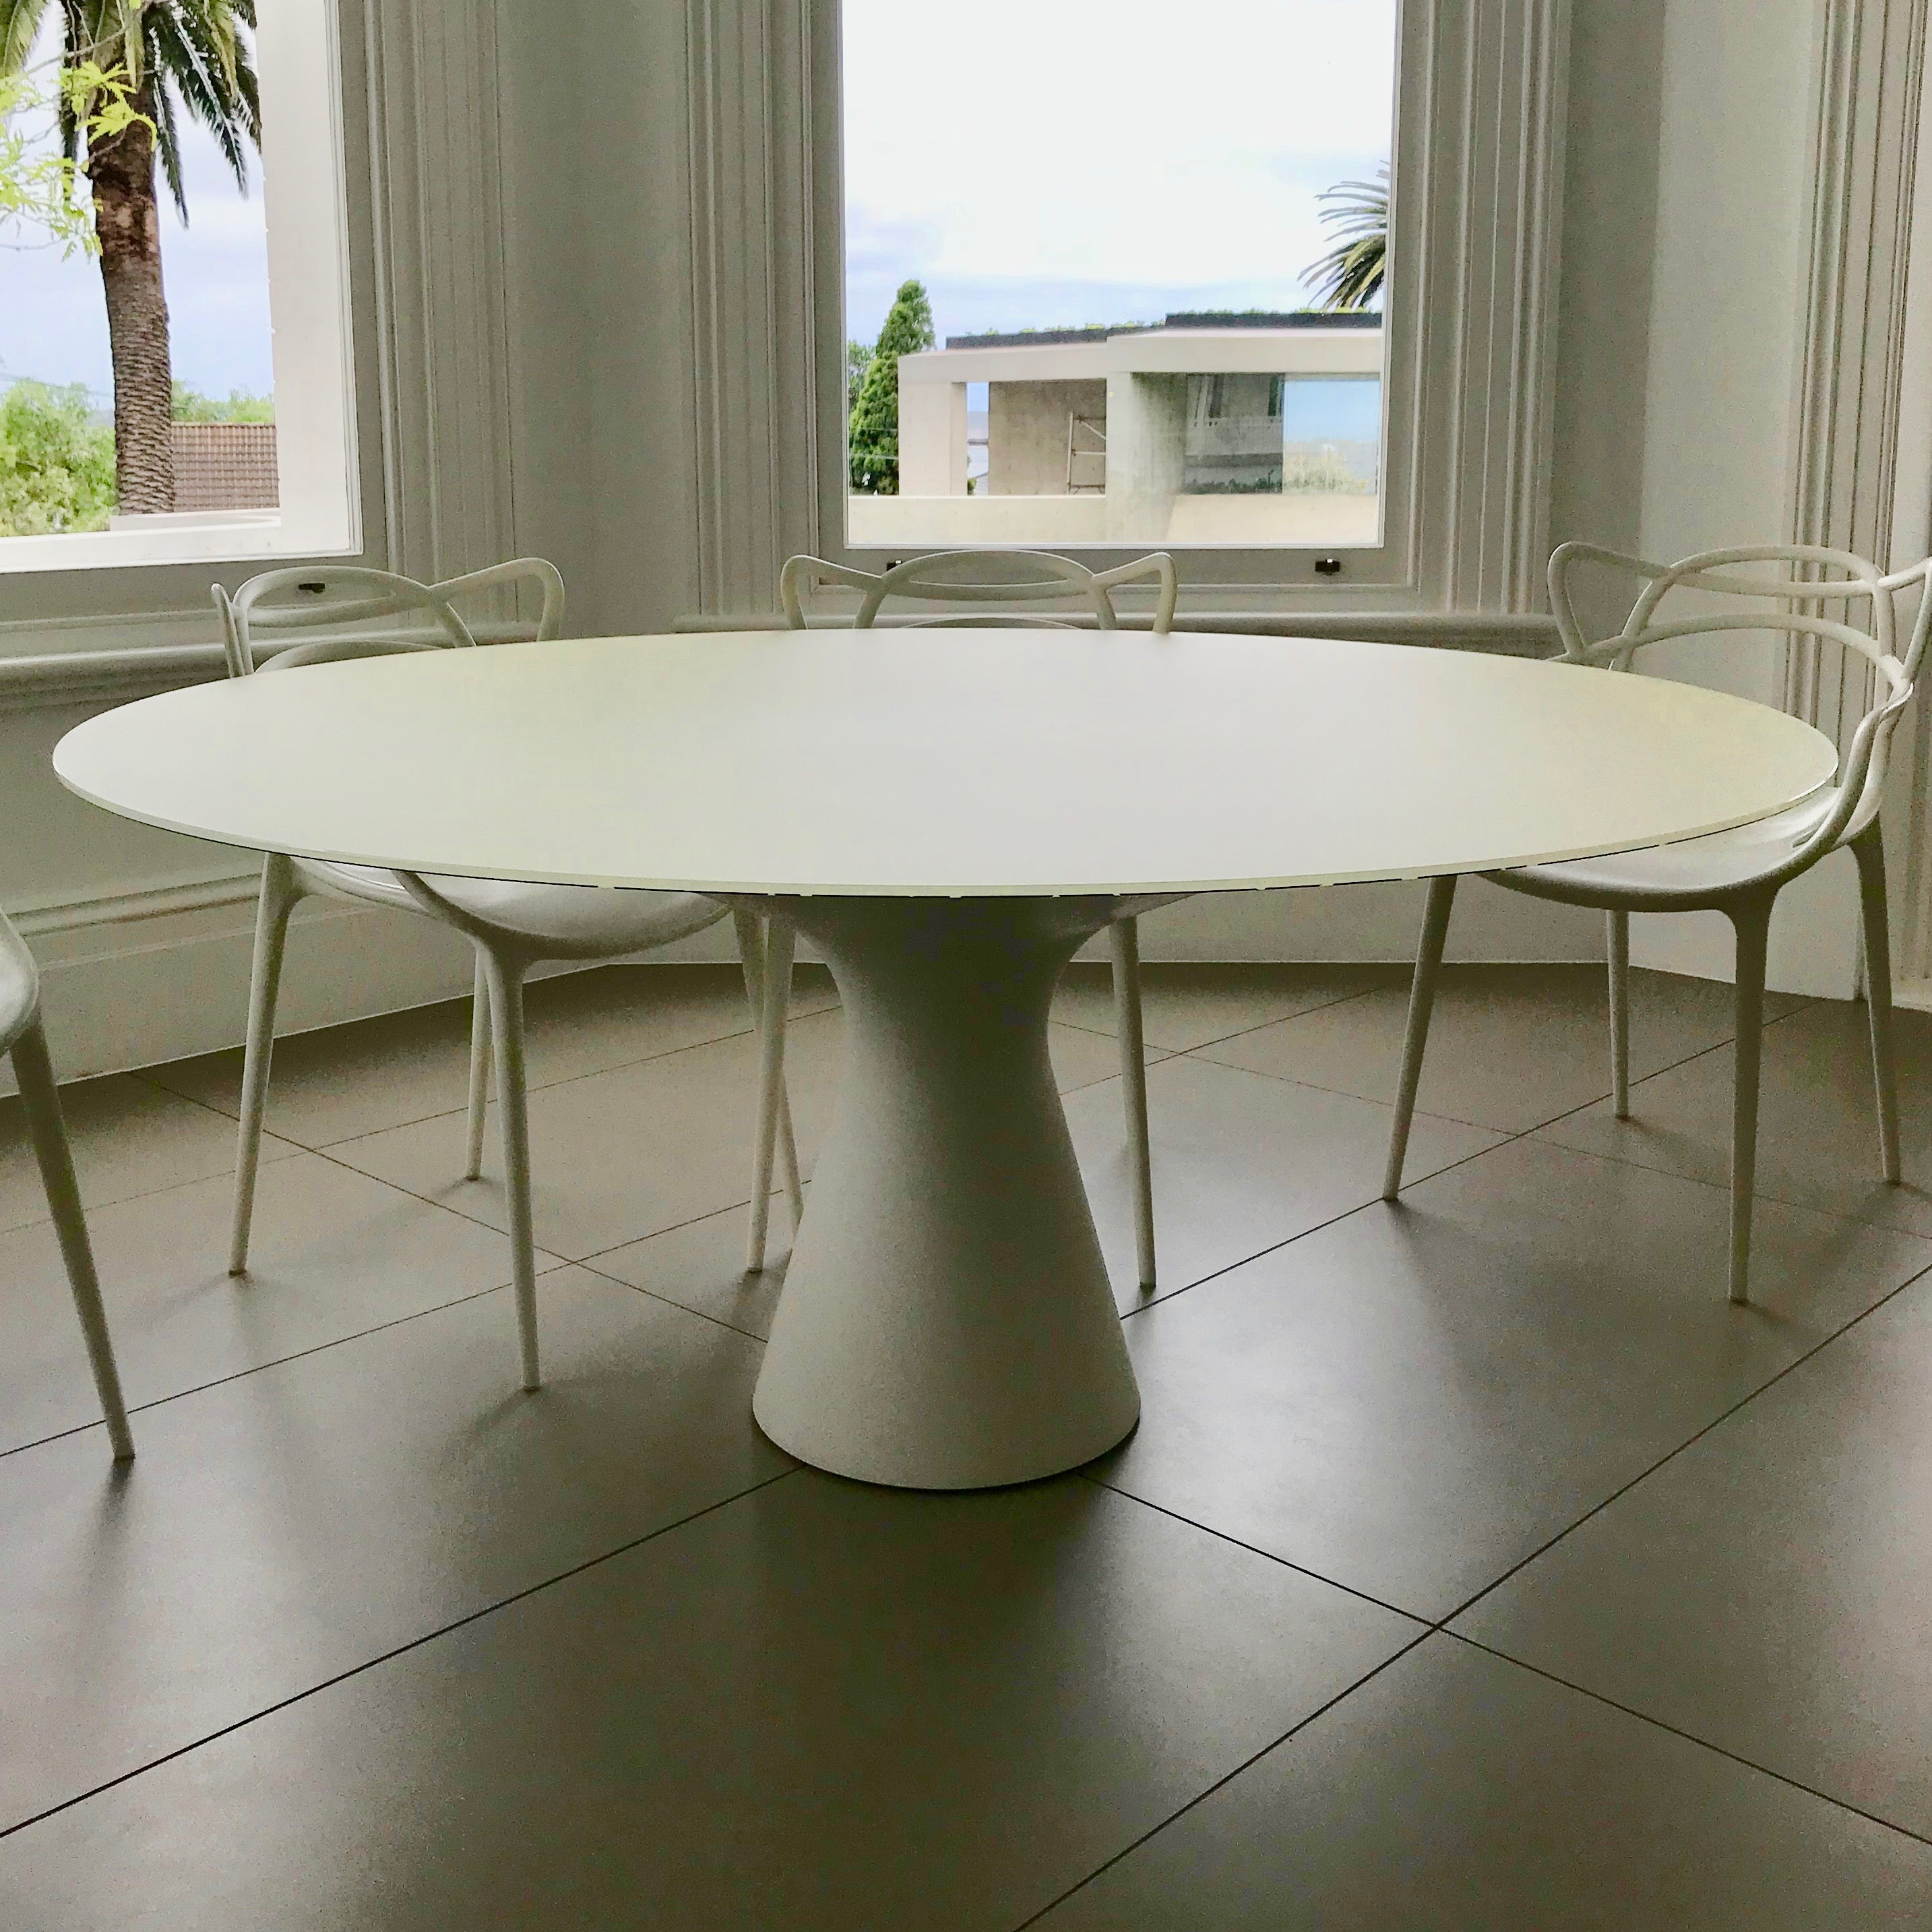 Blanco Dining Table by Jacopo Zibardi for Zanotta